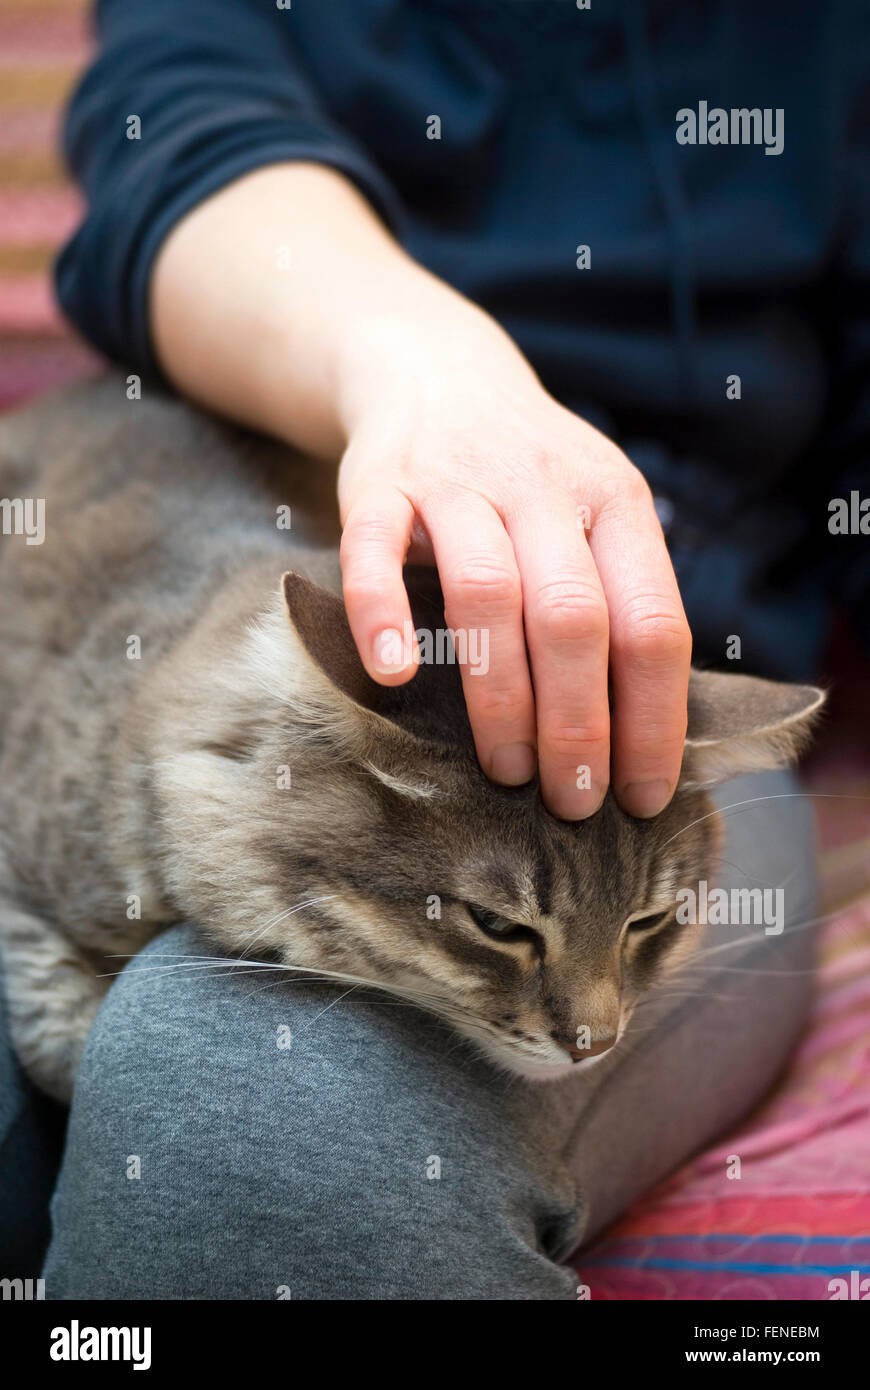 Woman caressing her cat at home Stock Photo